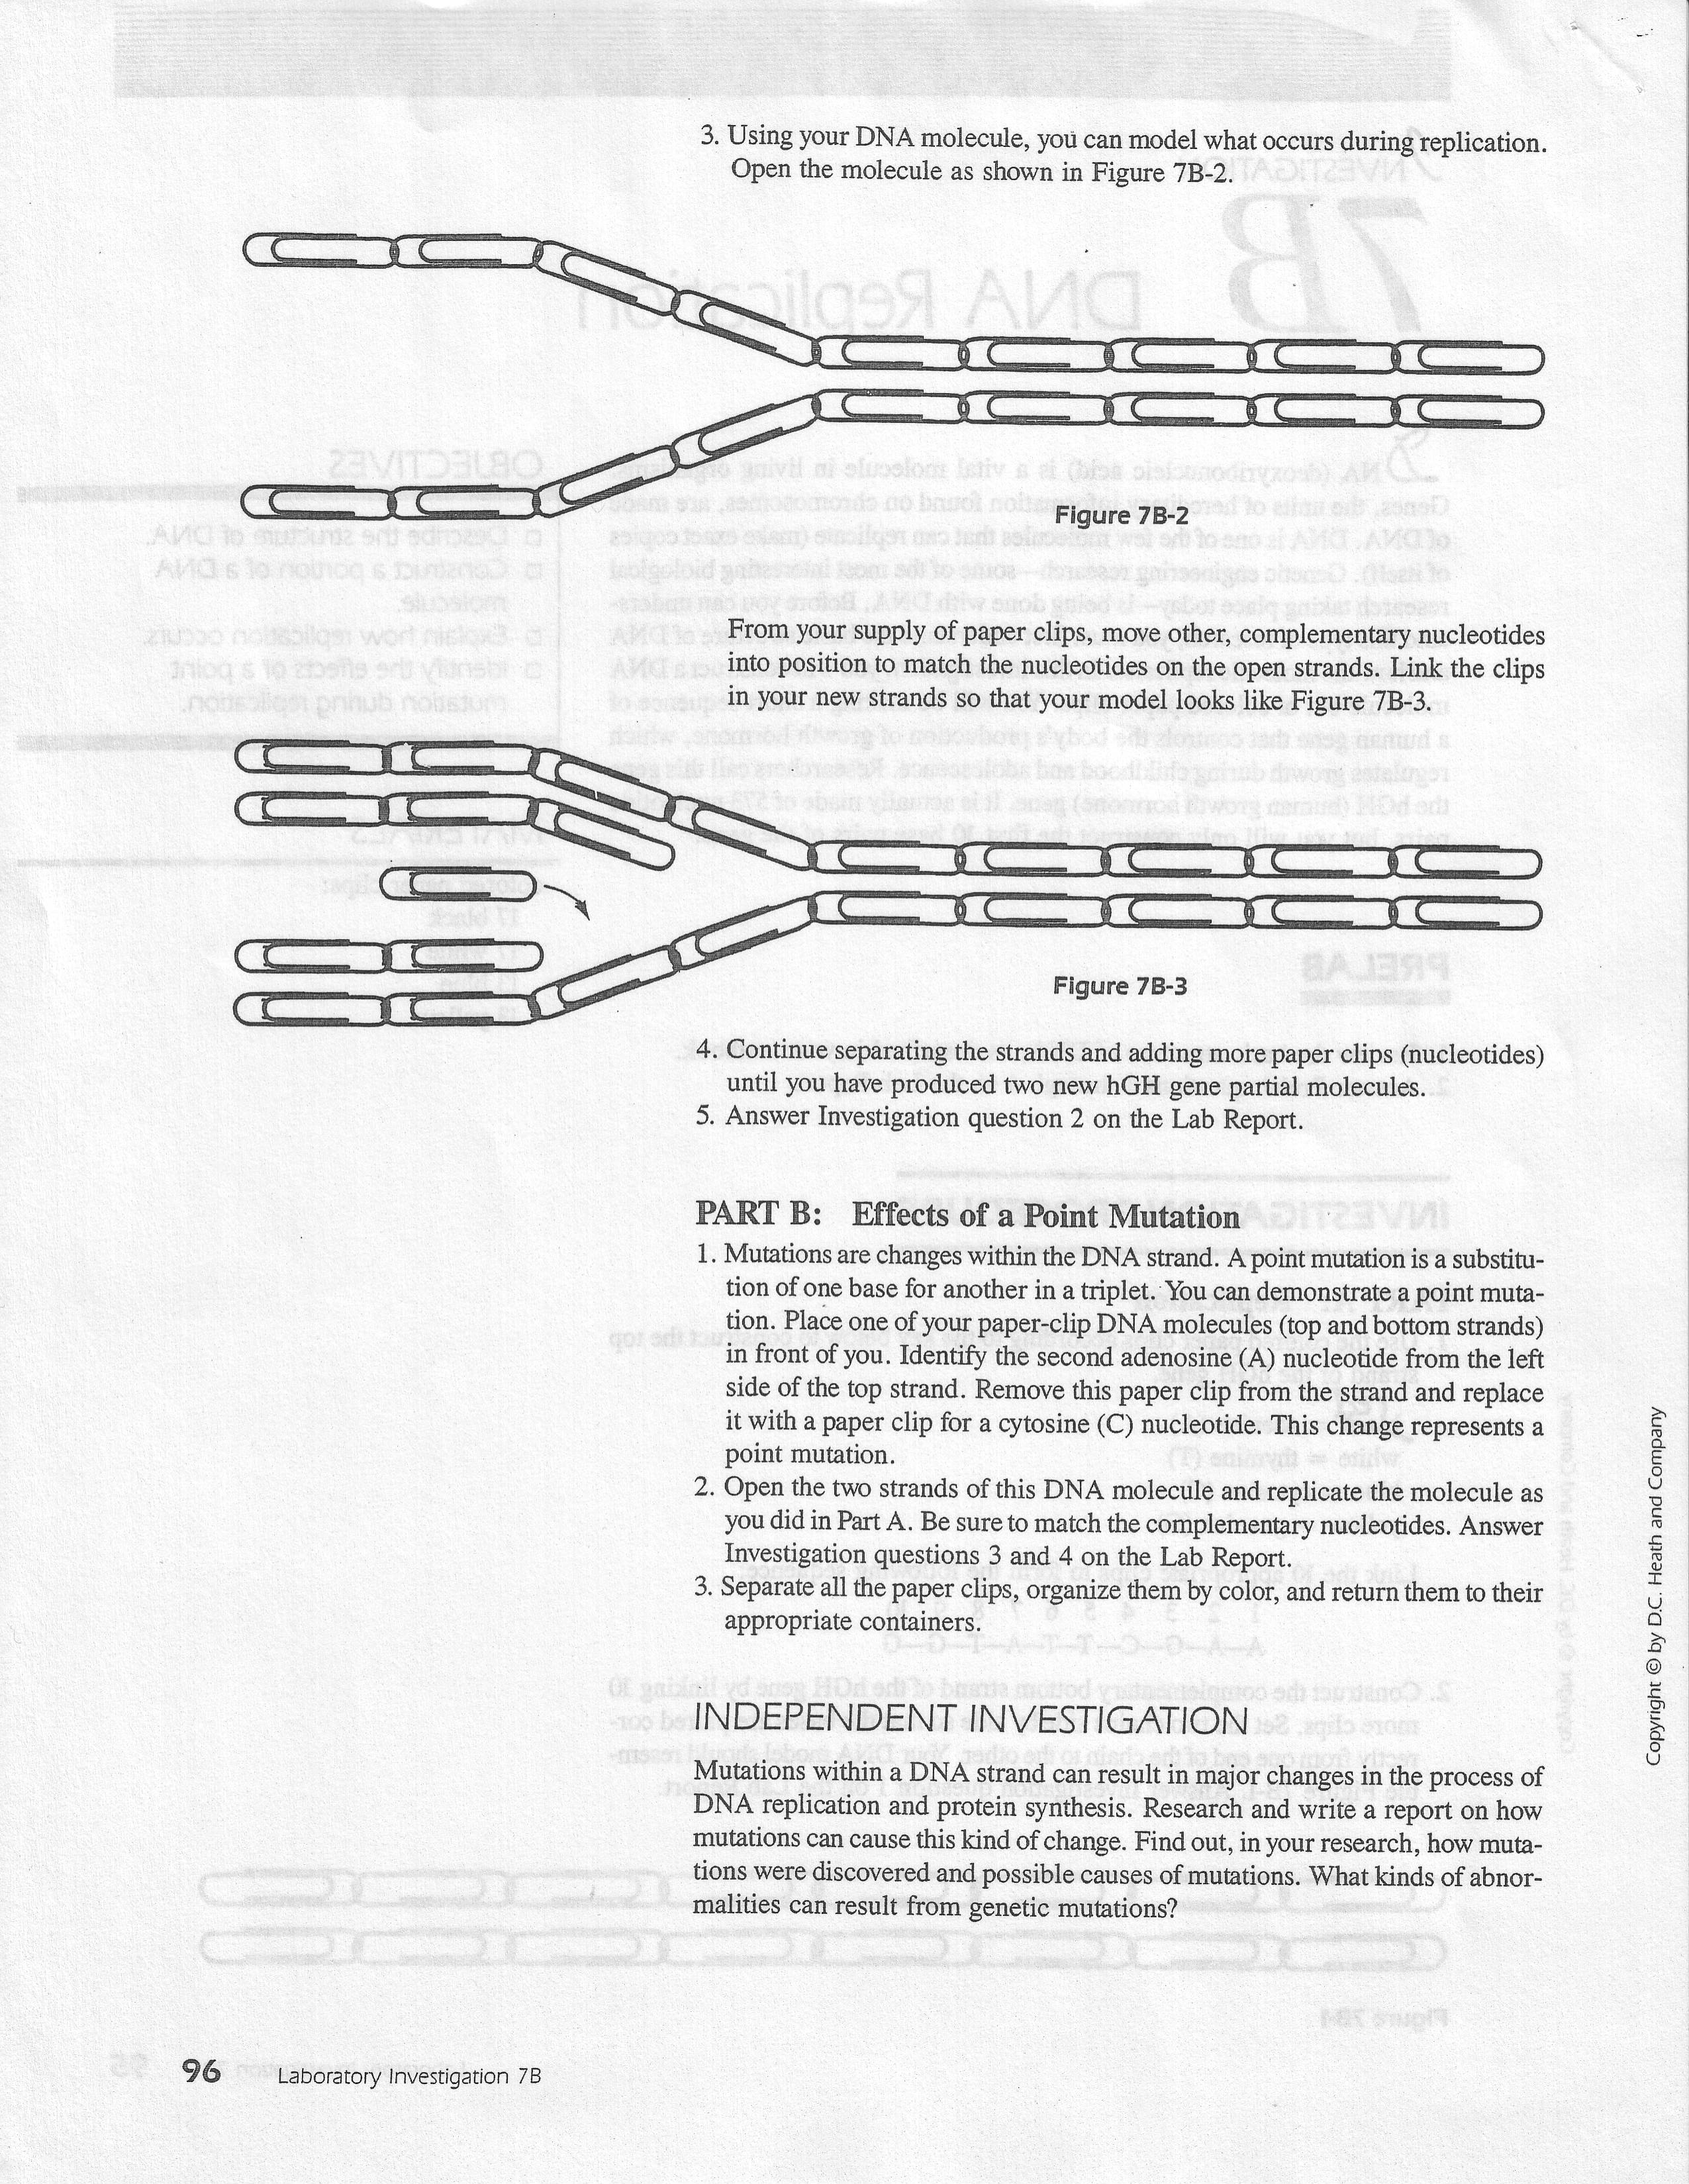 006 Brown Vs Board Of Education Essay Replicationlab2 Jpg Magnificent Conclusion Term Paper Thematic Full